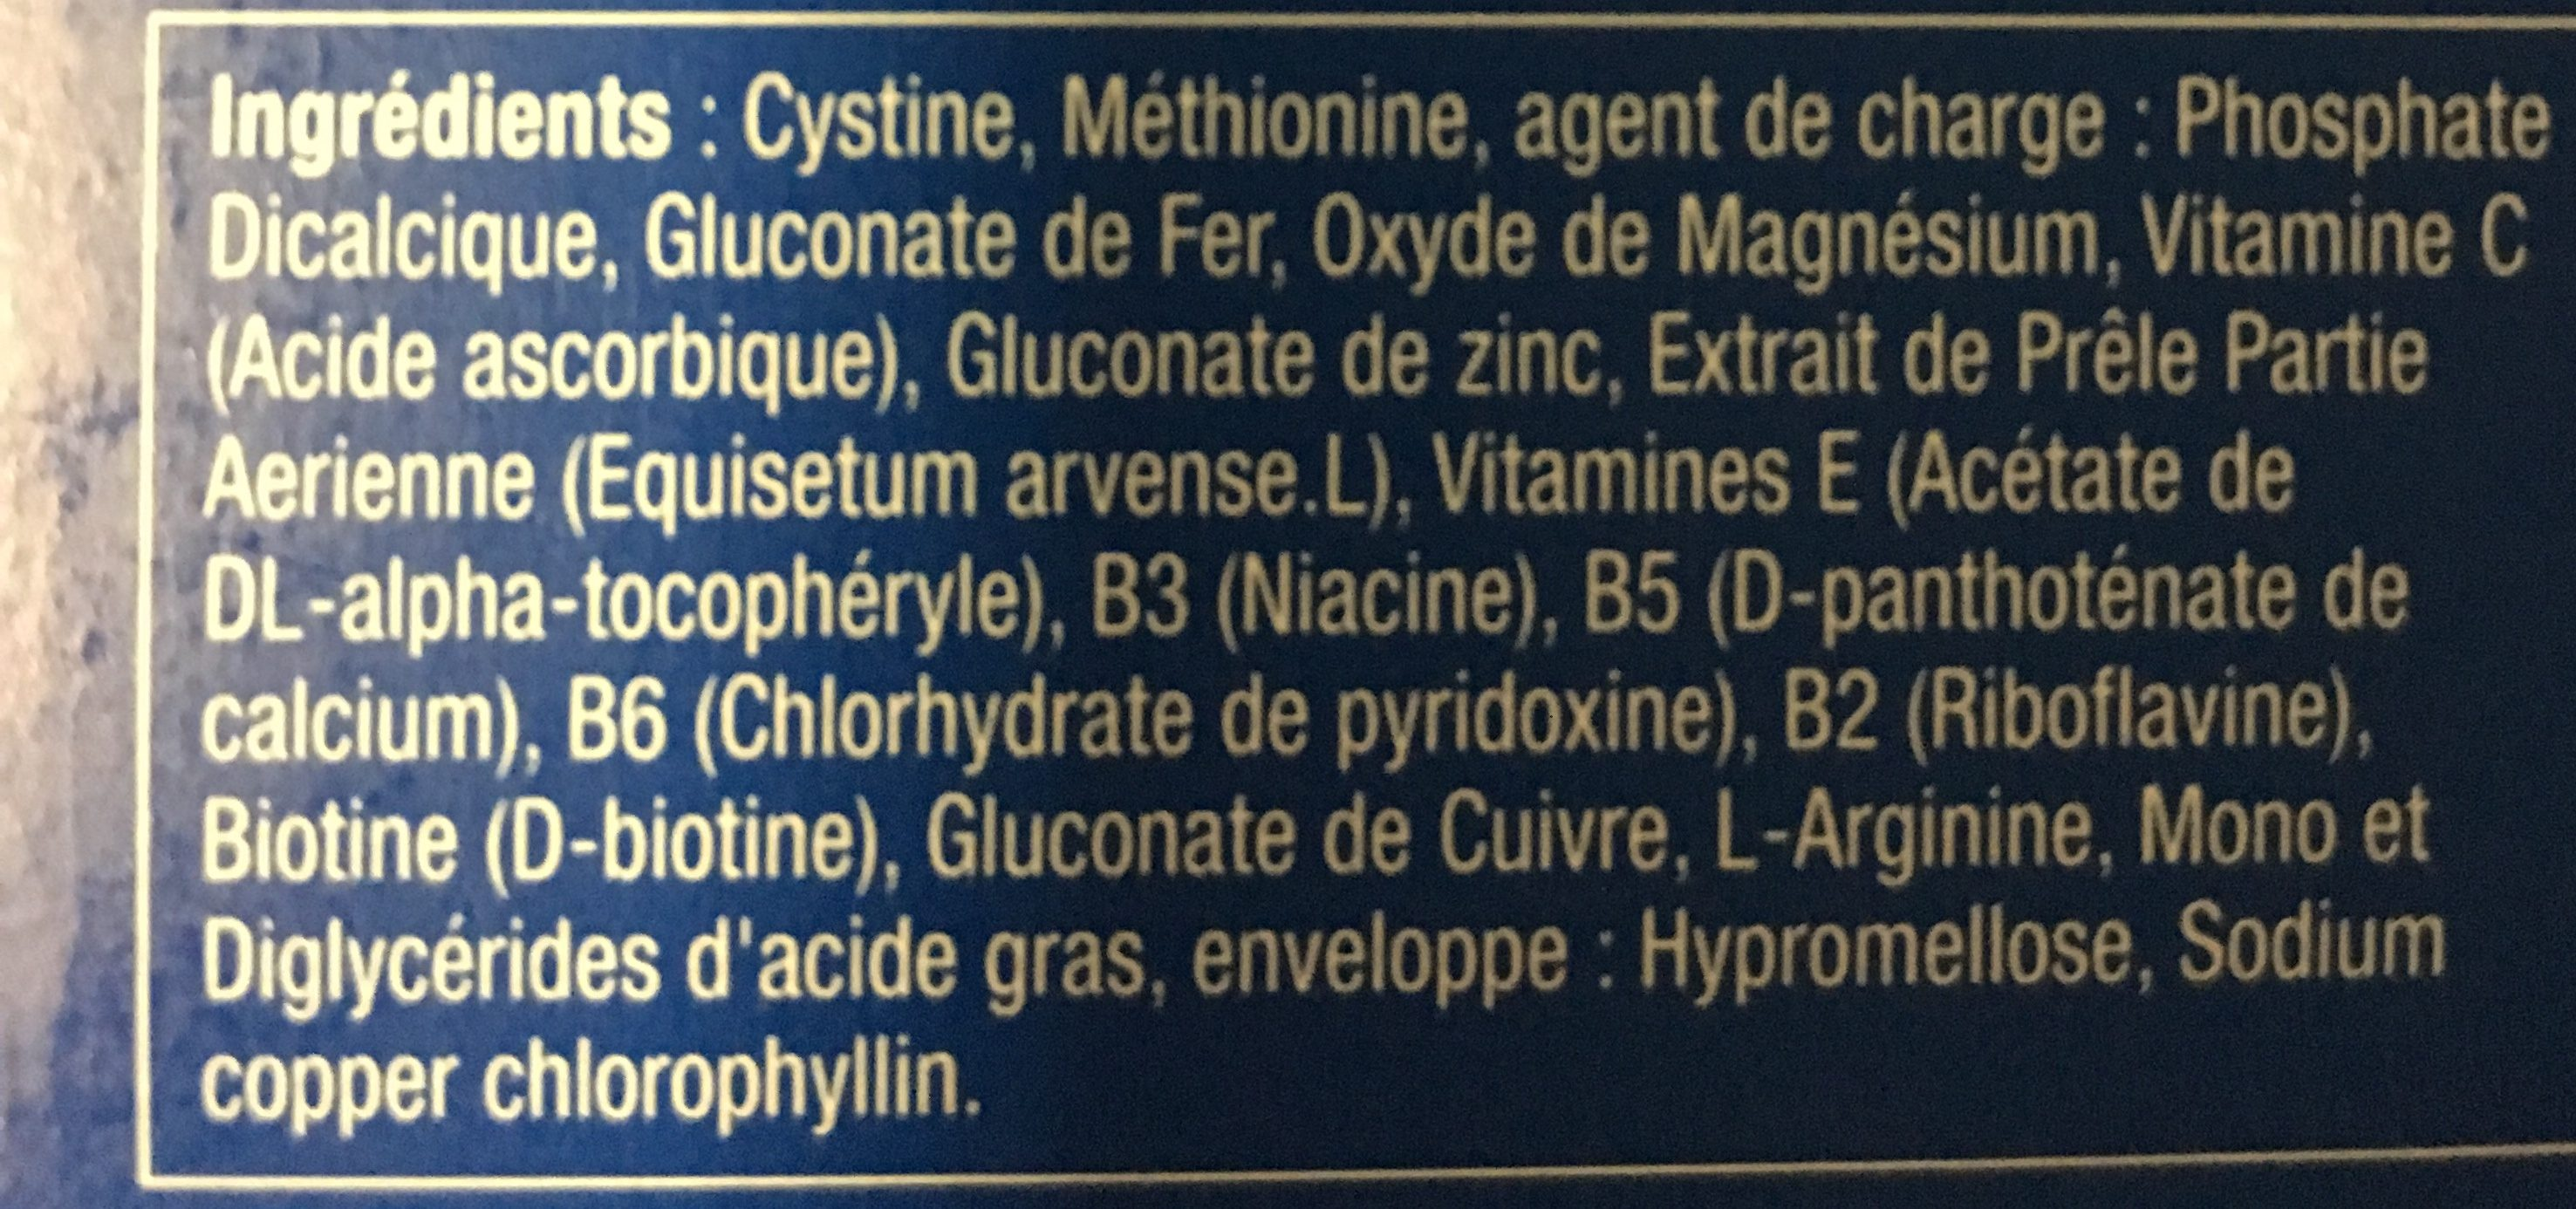 Novophane Ongles Et Cheveux - Ingredients